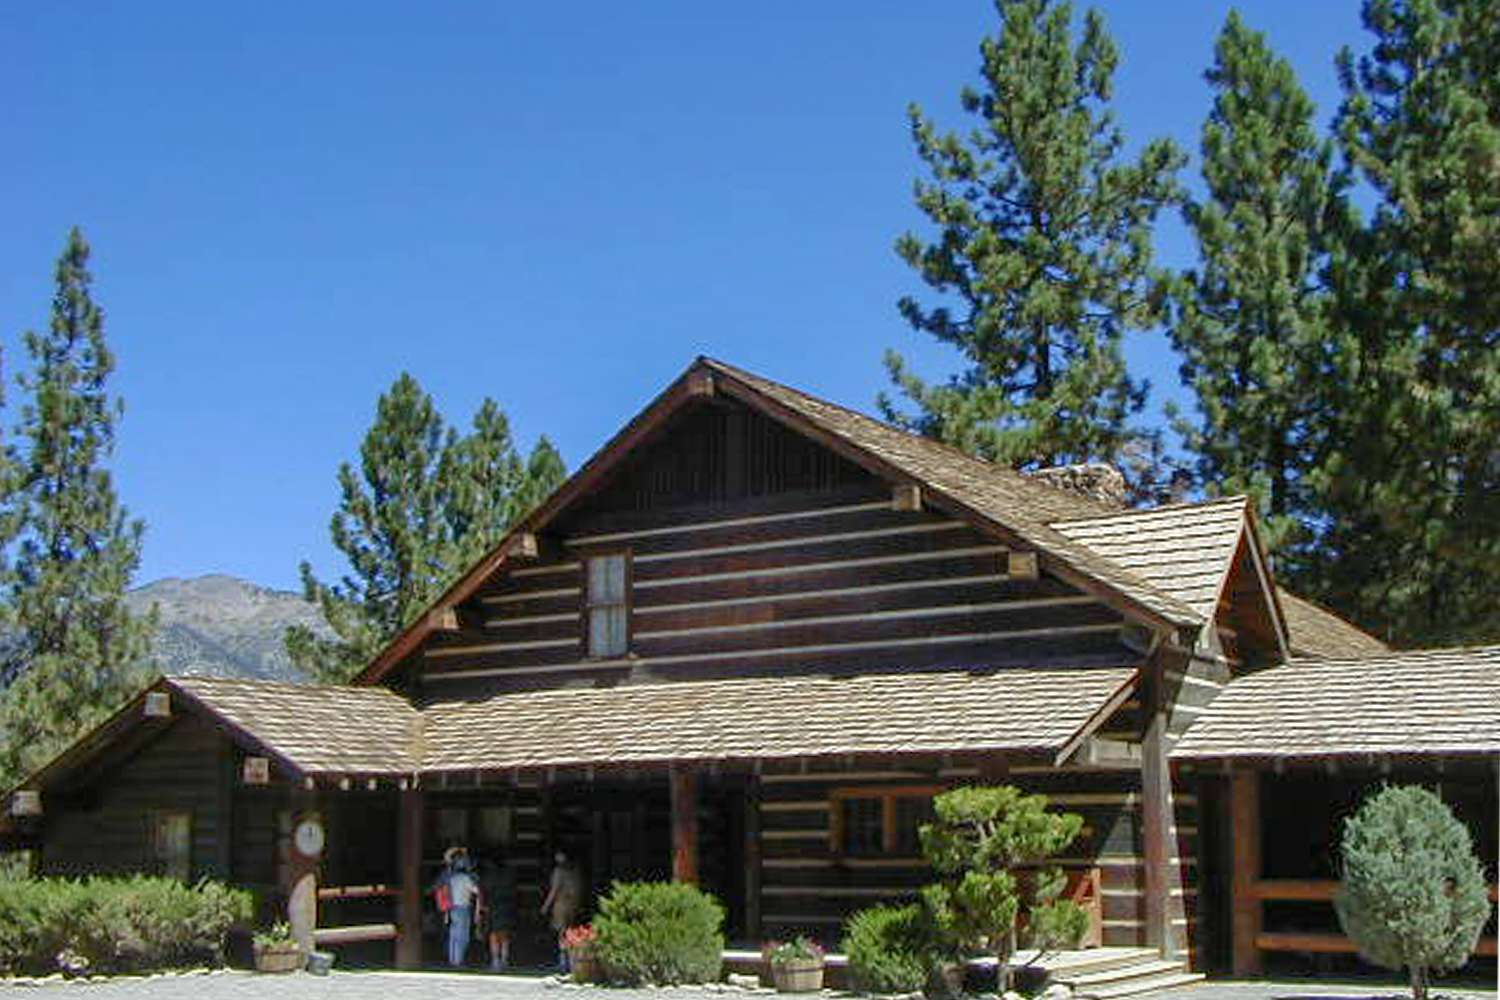 Ponderosa Ranch: Bonanza TV Location at Lake Tahoe on stonebrook house plans, haunted house plans, clayton house plans, green acres house plans, santa fe house plans, farmington house plans, zorro house plans, cherokee house plans, california house plans, medium house plans, mountain view house plans, casita house plans, artesia house plans, cimarron house plans, two and a half men house plans, small hacienda house plans, thoreau house plans, pioneer house plans, the big valley house plans, aspen house plans,